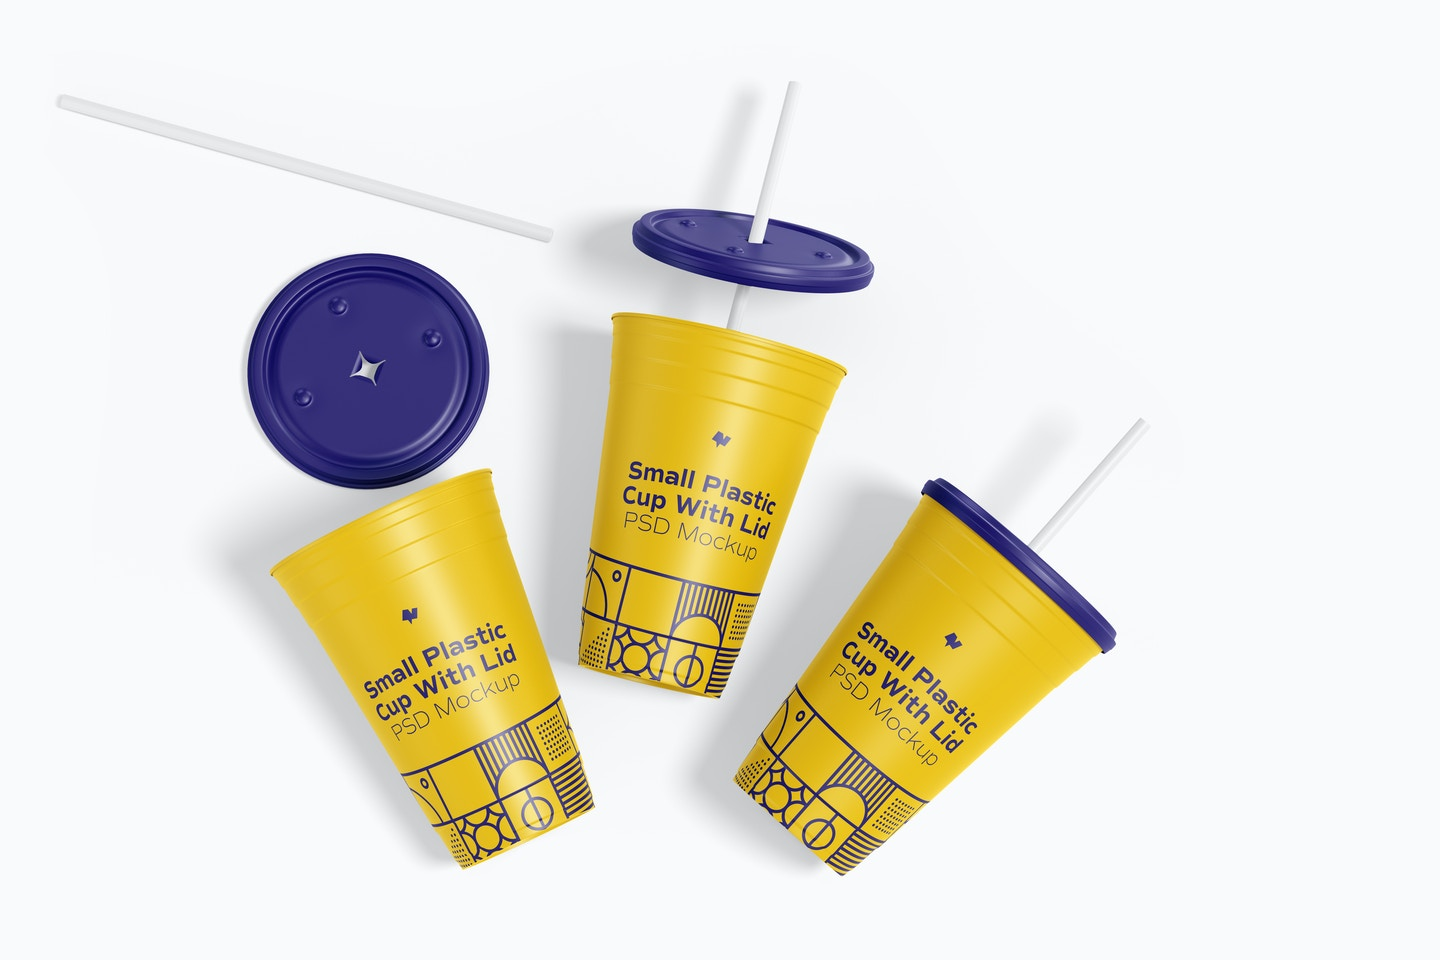 Small Plastic Cup with Lid Mockup, Top View